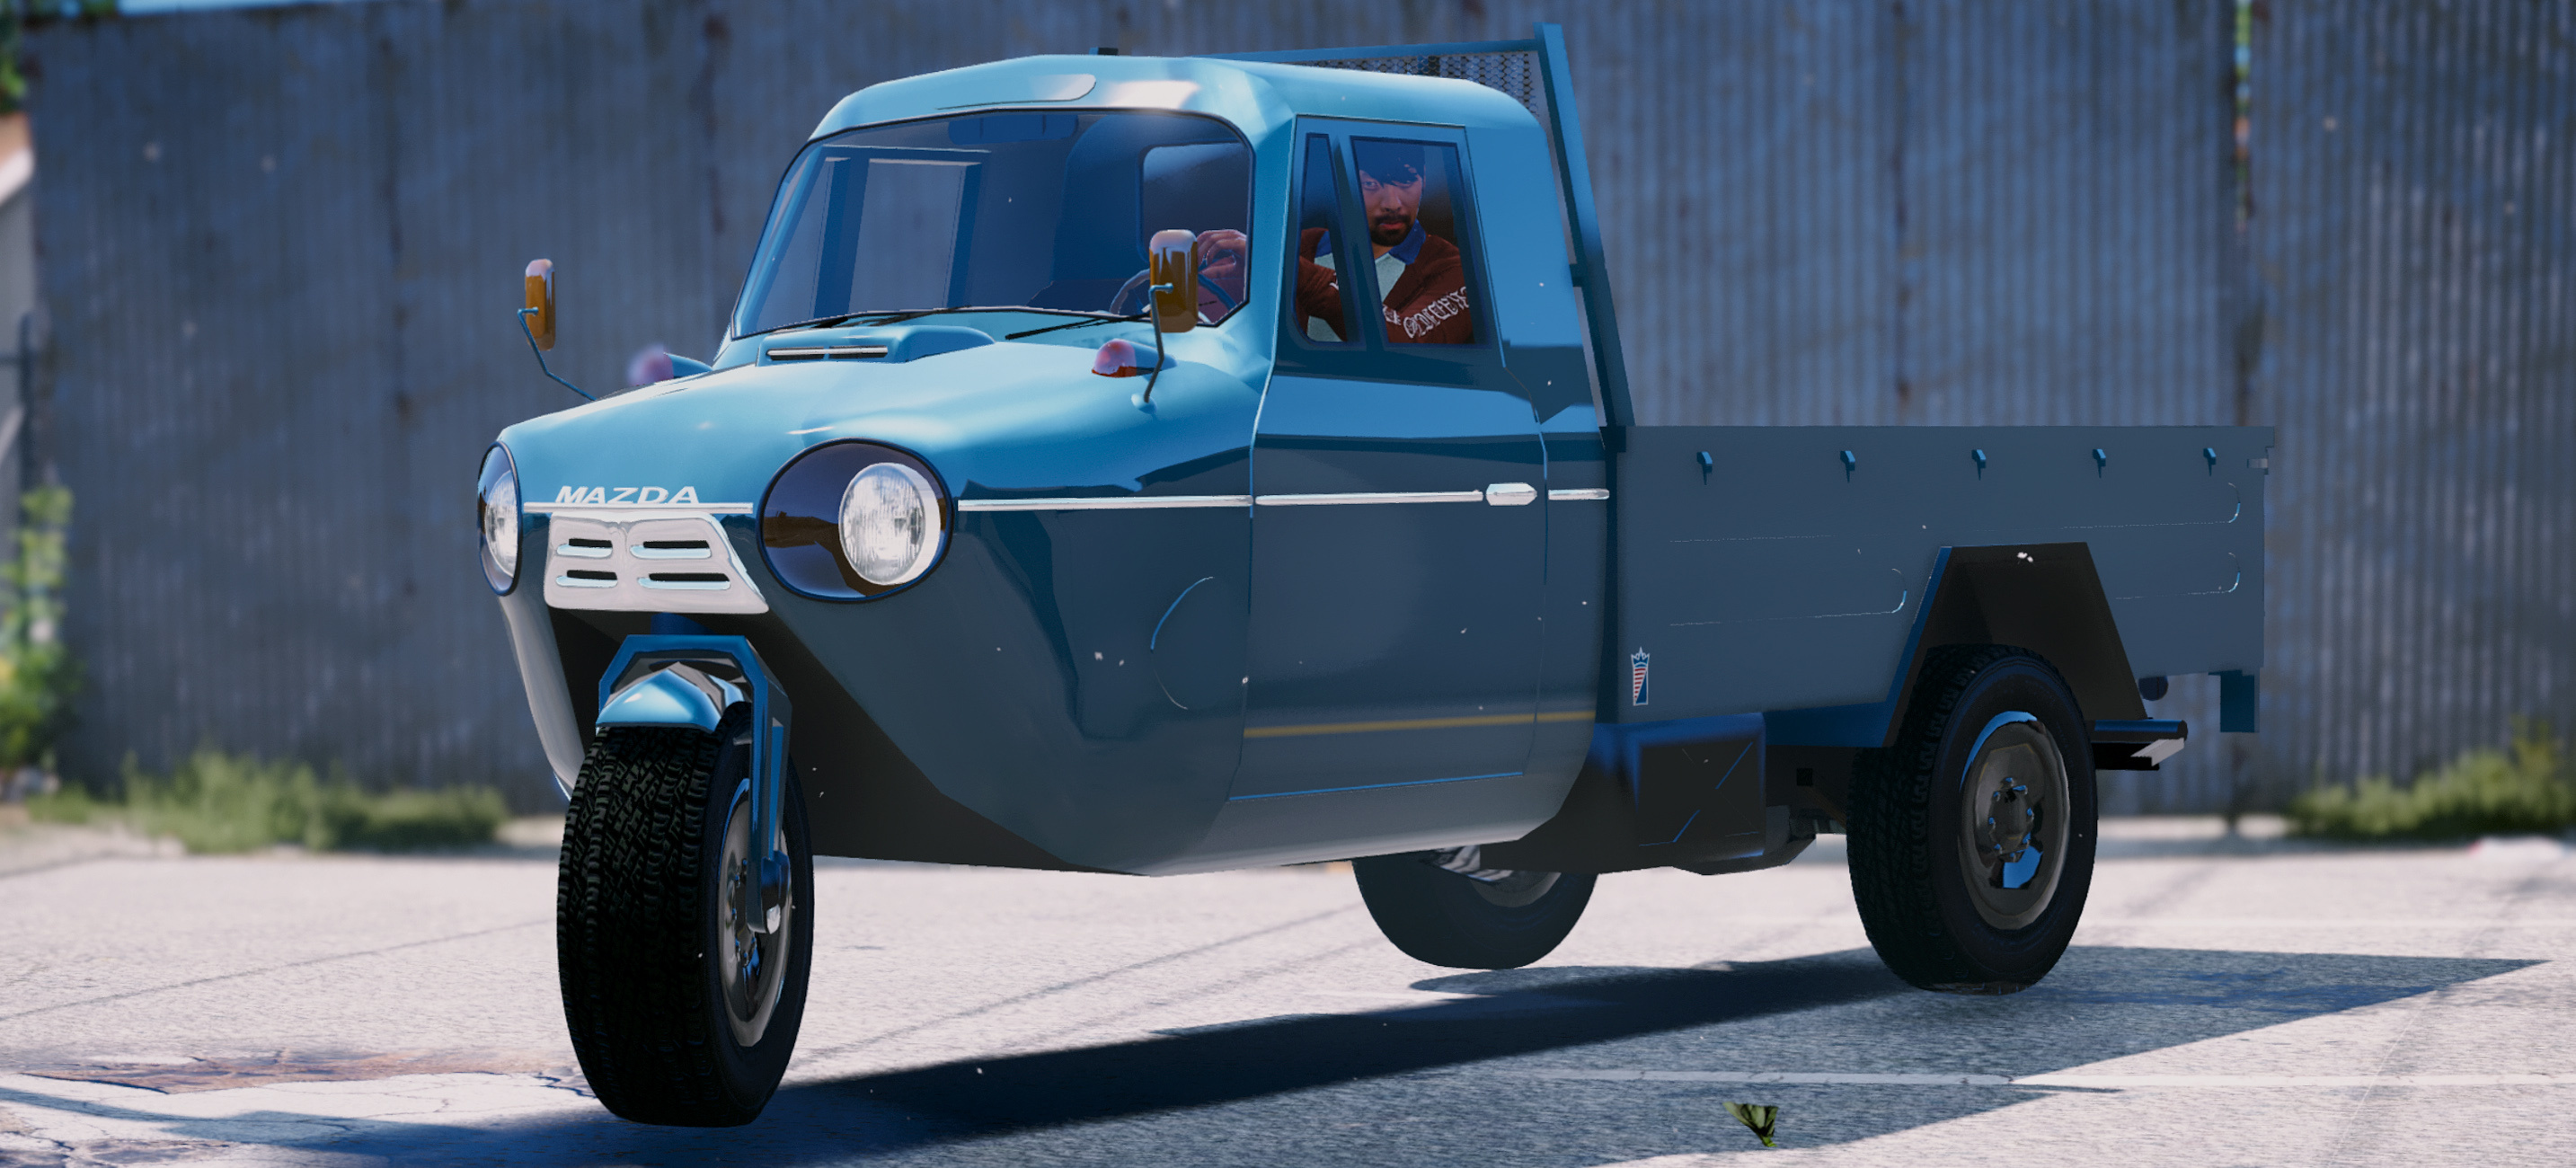 1956 mazda t 2000 project gta5 mods 5c2f8f 1956 mazda t 2000 pan 3 altavistaventures Image collections